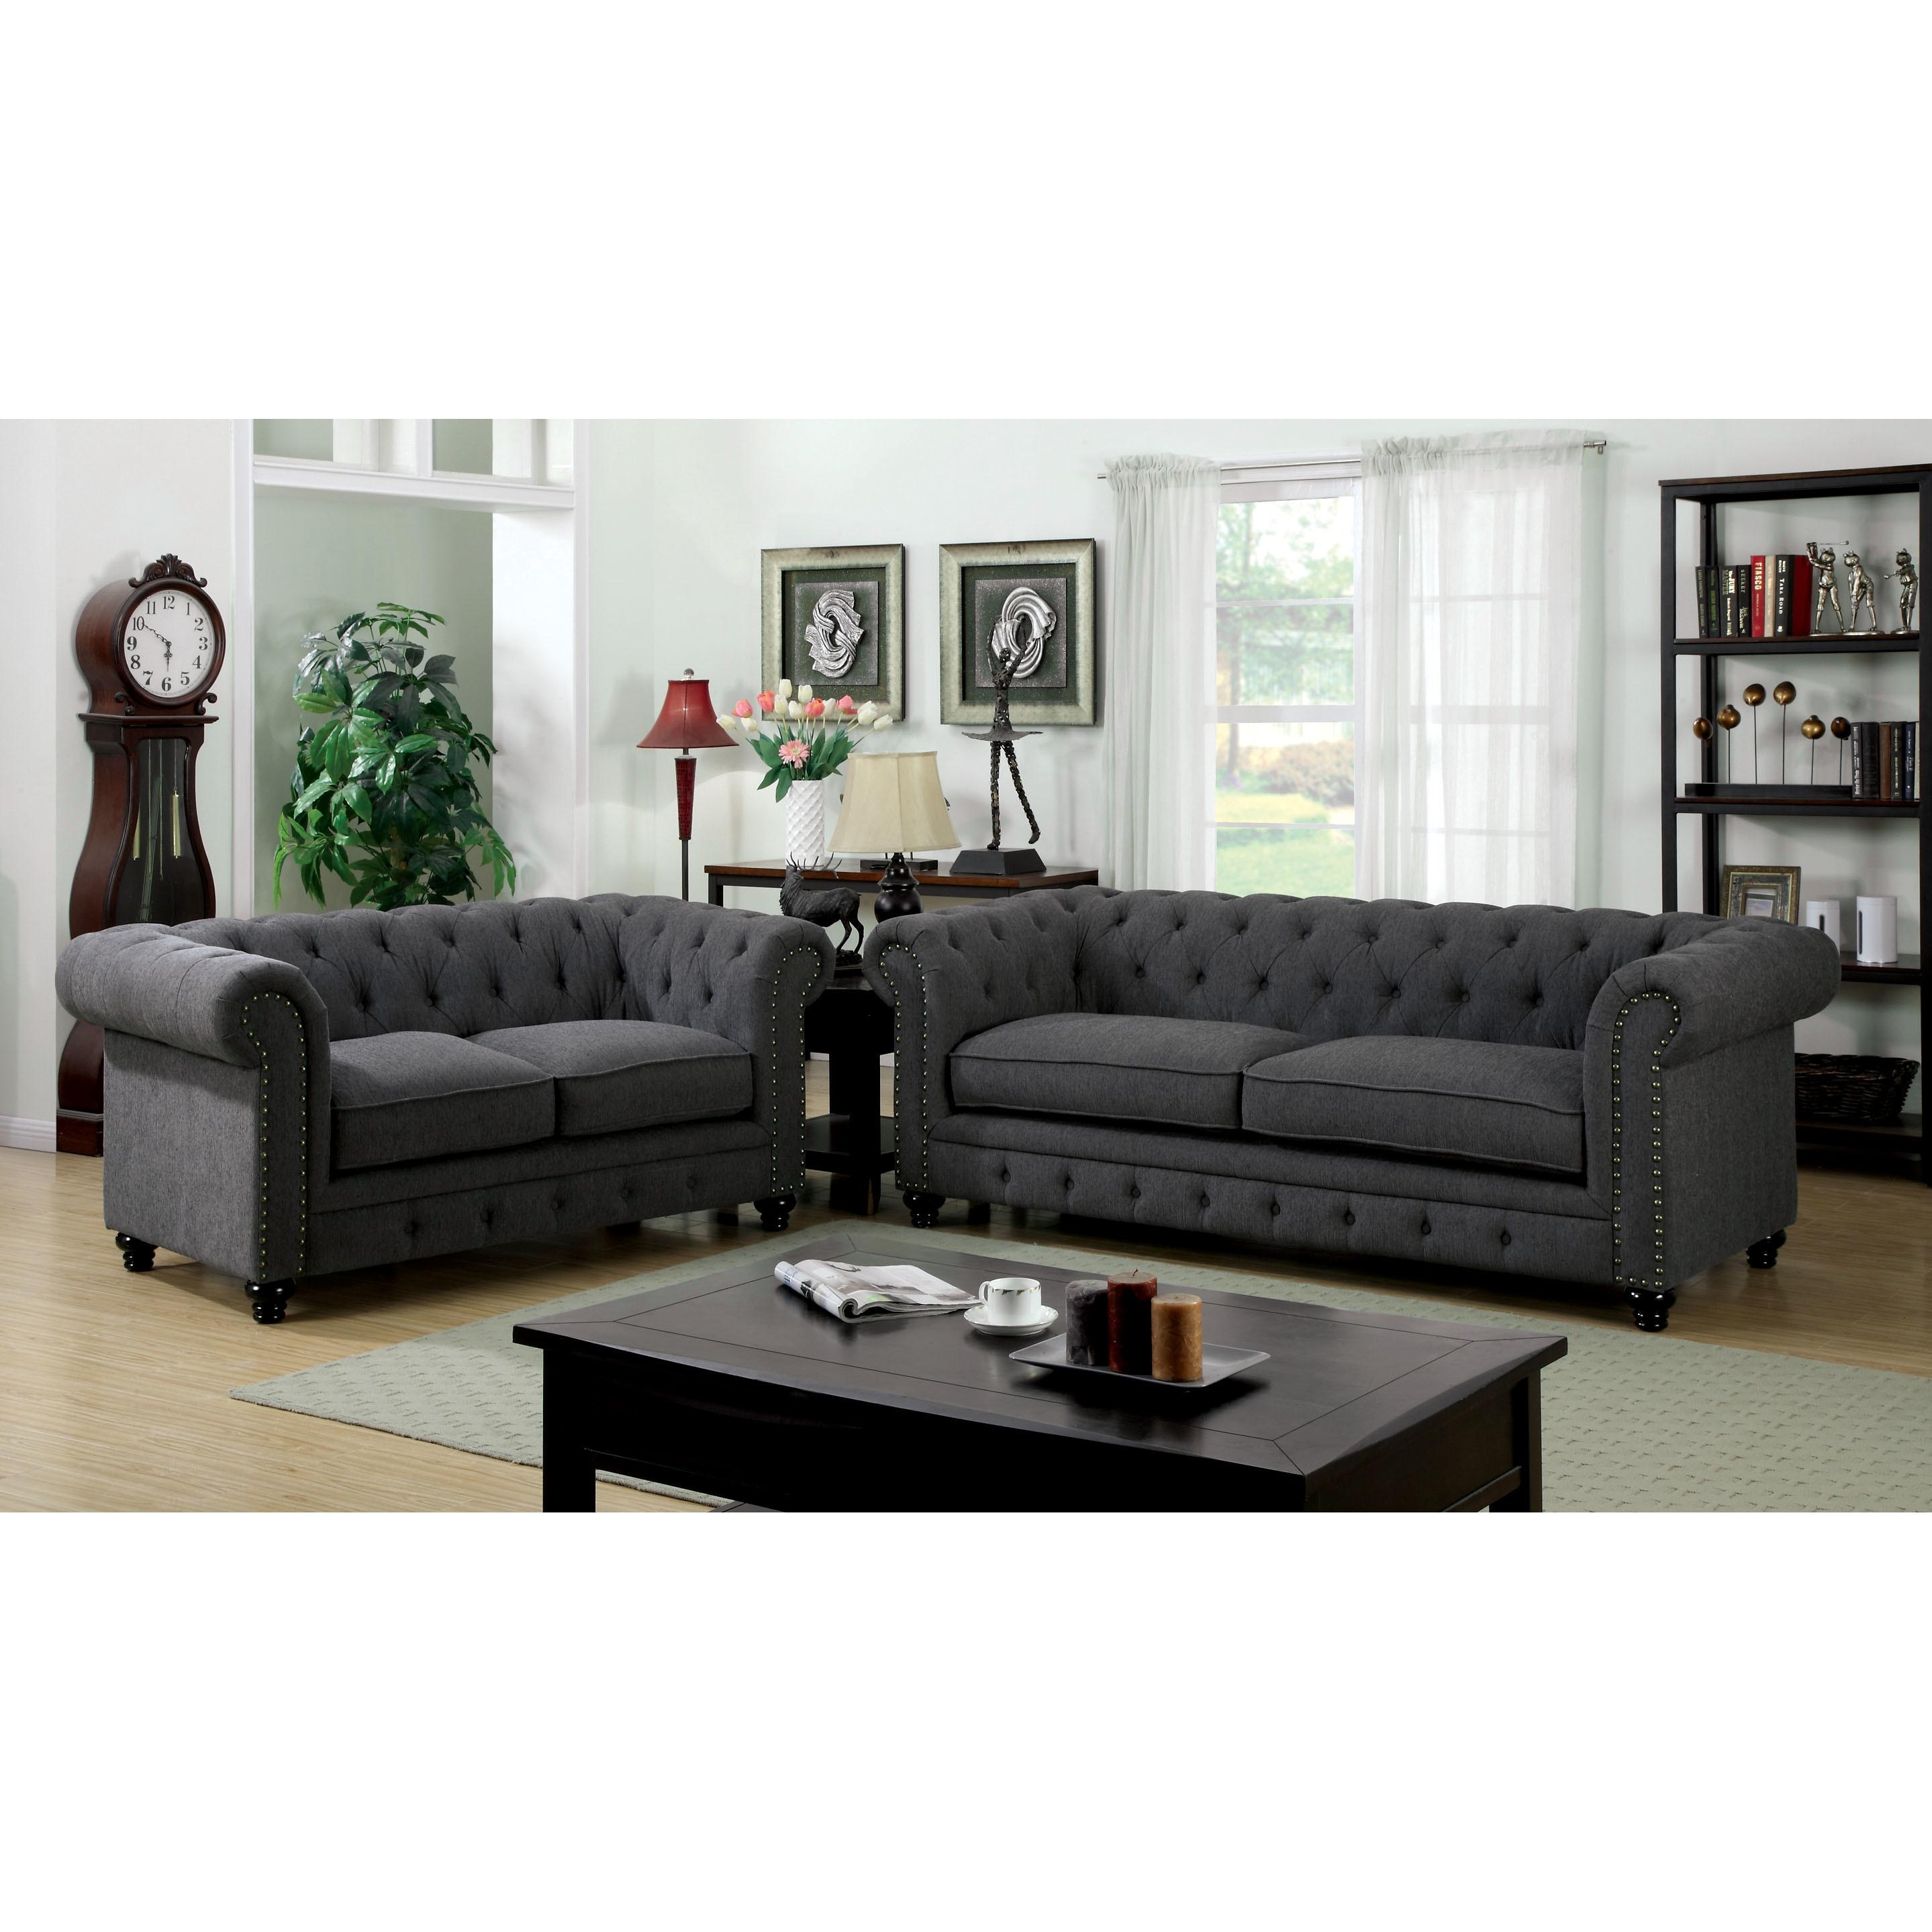 Cheap Tufted Sofa 88 With Cheap Tufted Sofa | Jinanhongyu Pertaining To Affordable Tufted Sofas (View 13 of 20)